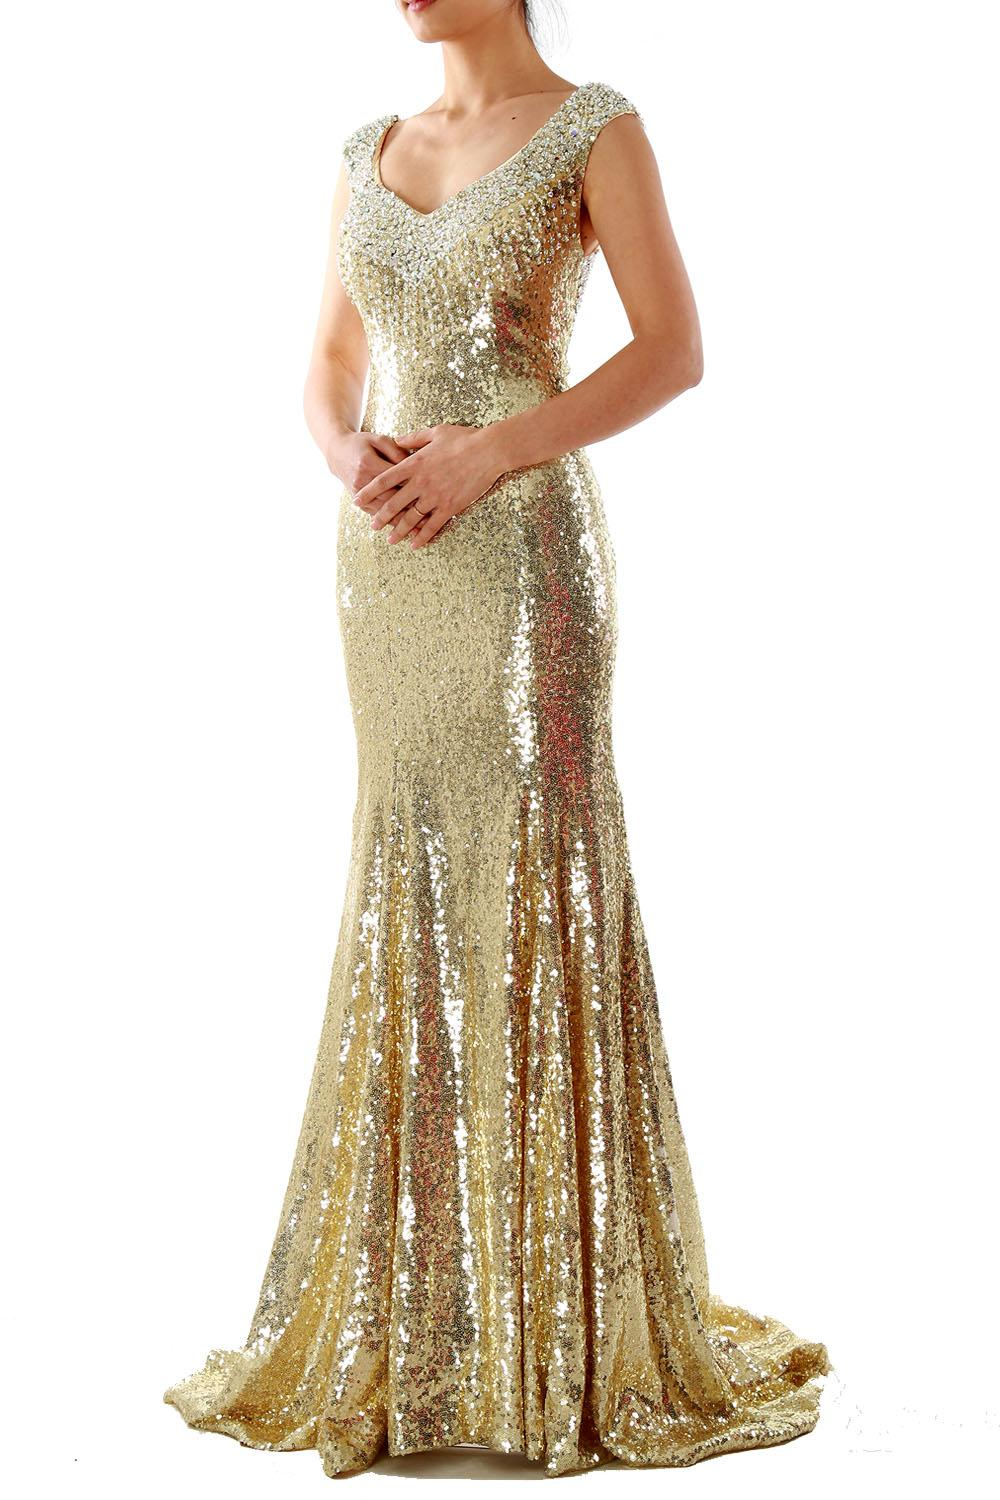 4022f83ca2ff MACloth Women V Neck Cap Sleeve Floor Length Long Mermaid Crystal Sequin  Wedding Party Dress Prom Formal Evening Gown 160139 Online with $129.01/ Piece on ...